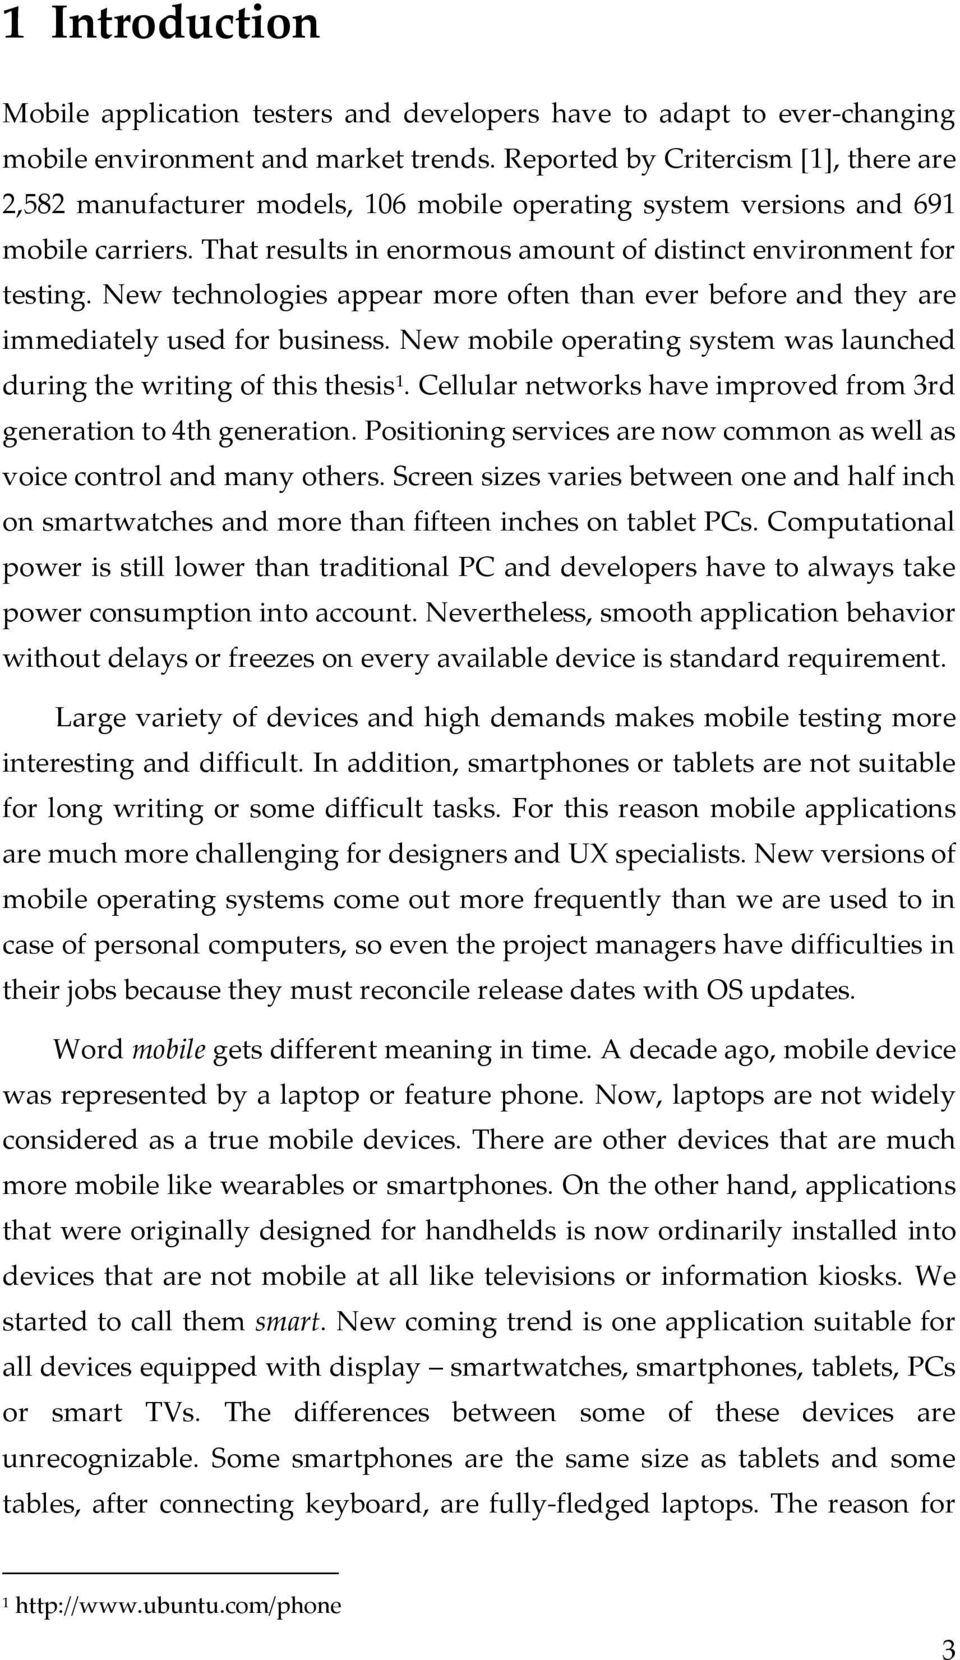 New technologies appear more often than ever before and they are immediately used for business. New mobile operating system was launched during the writing of this thesis 1.